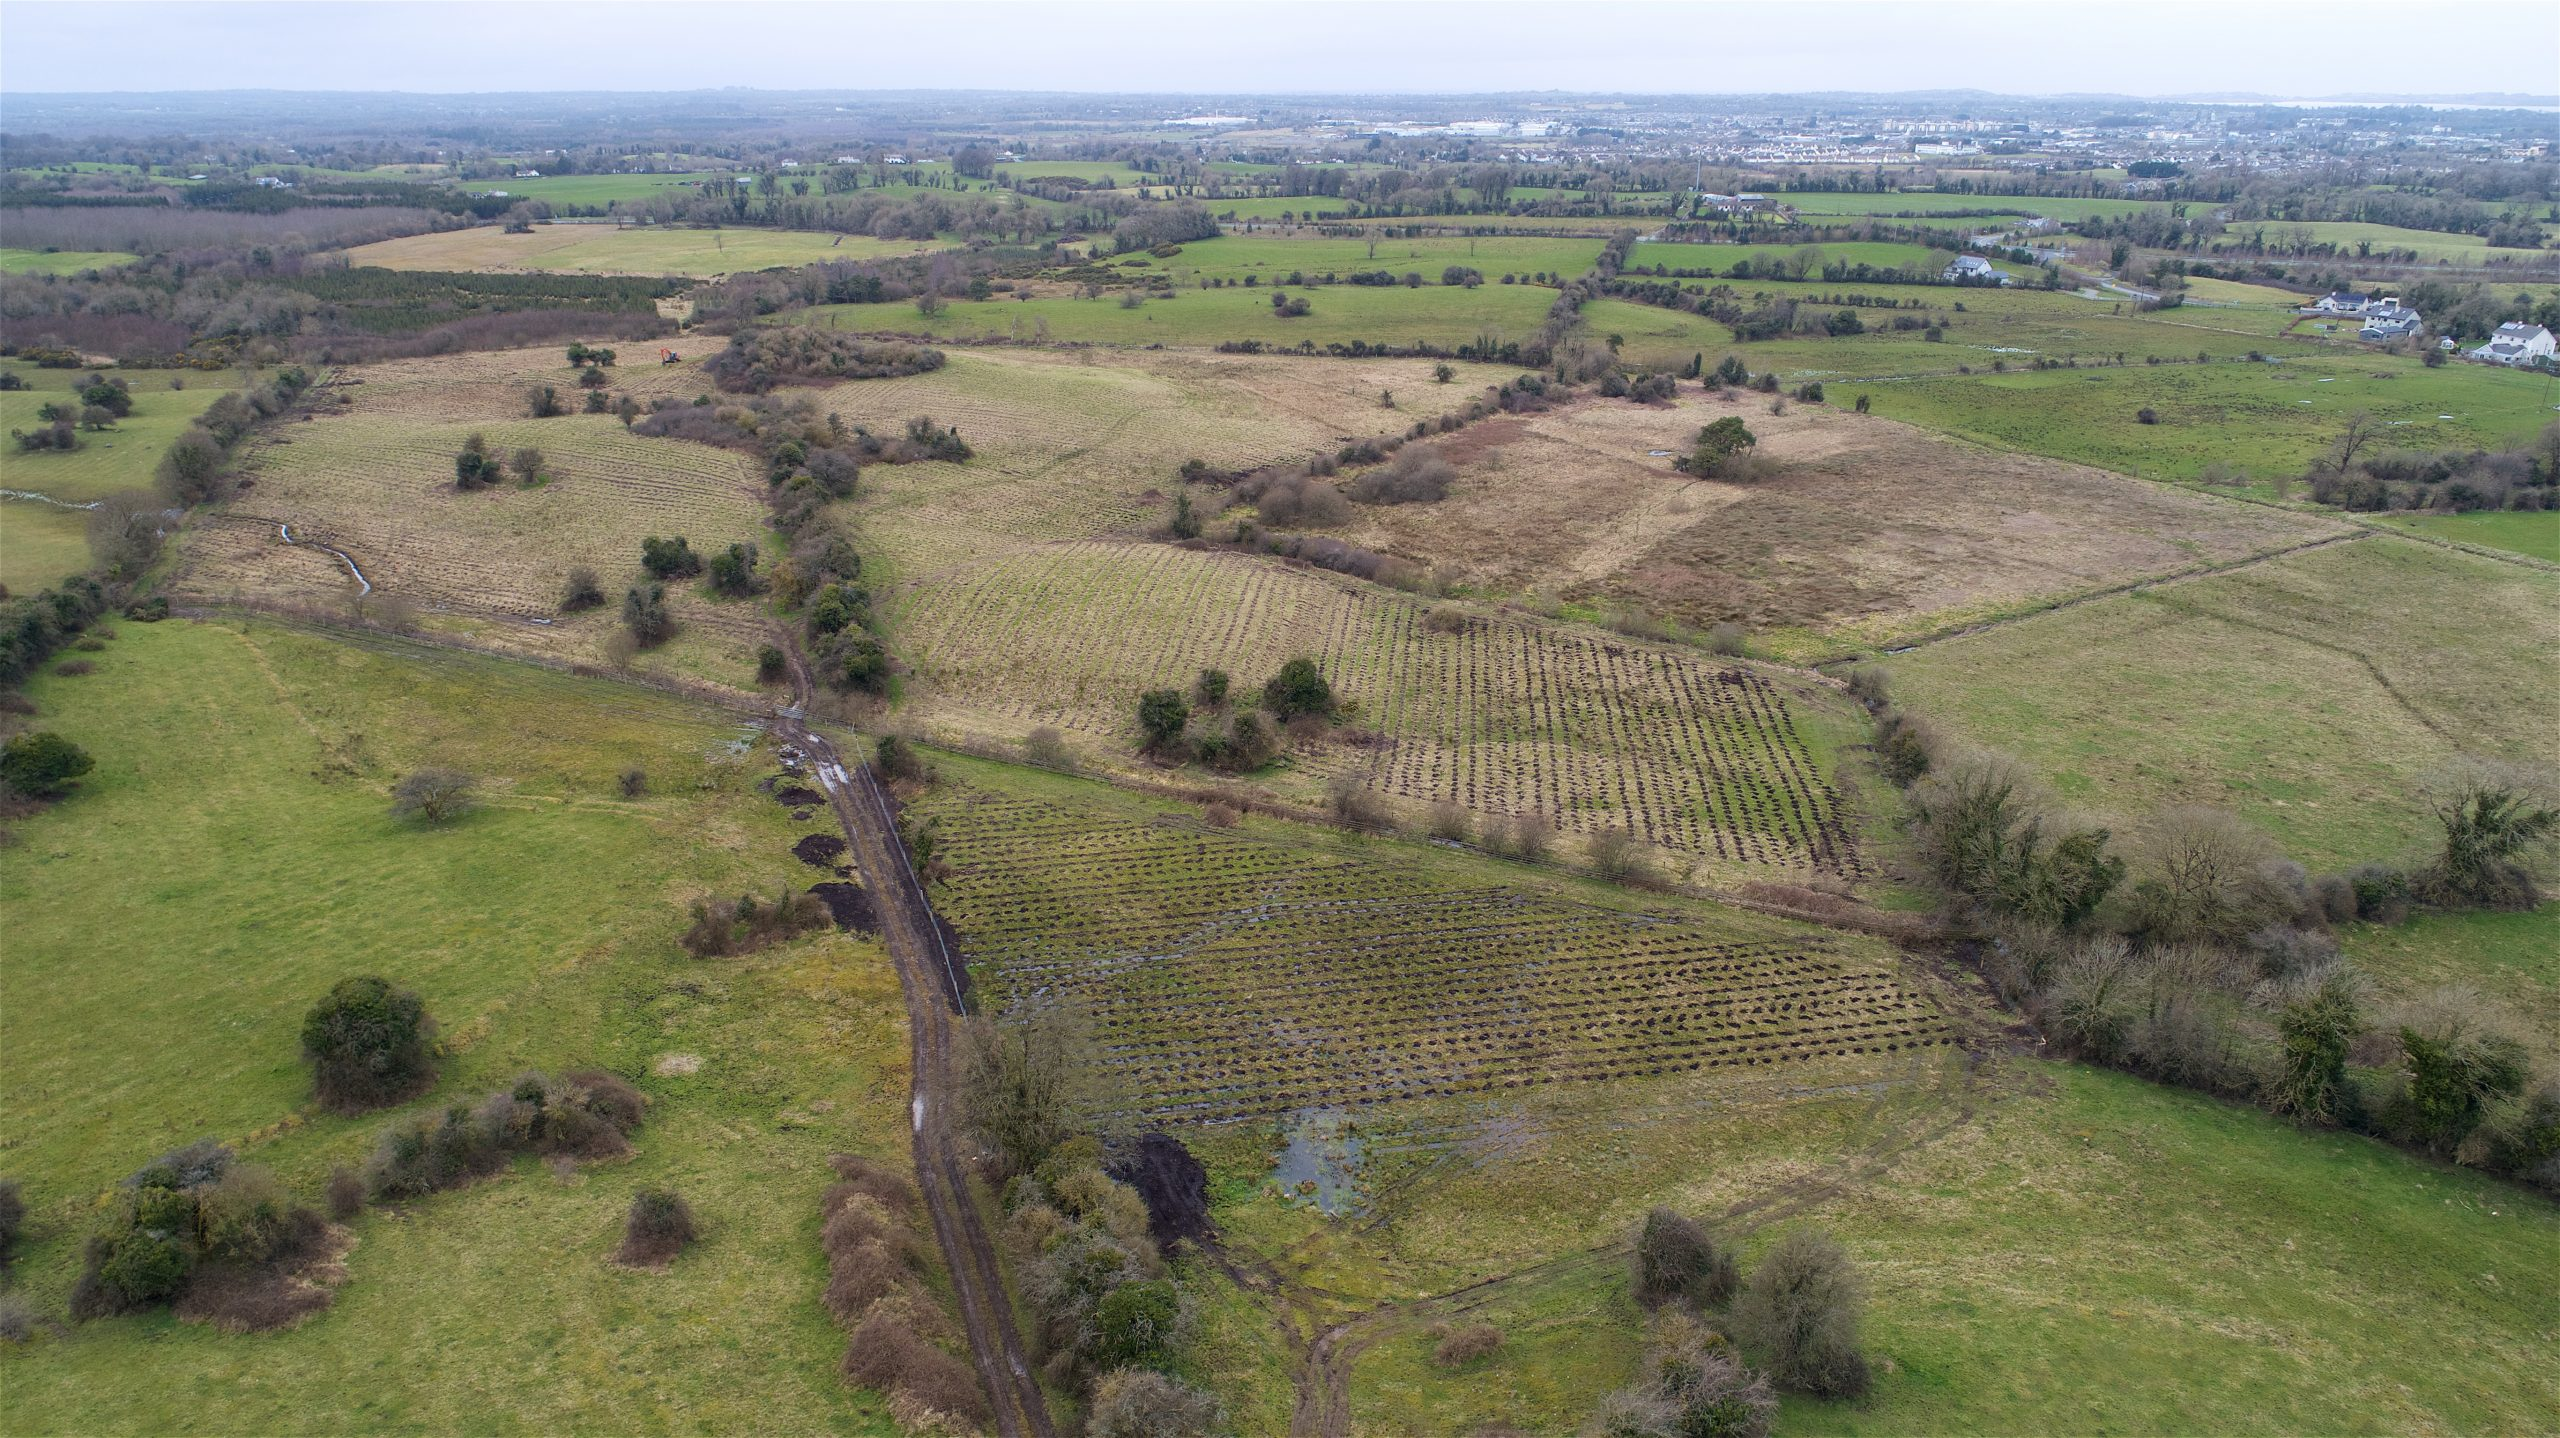 The site of a new native woodland with over 33,000 trees in Burnellstown, County Westmeath